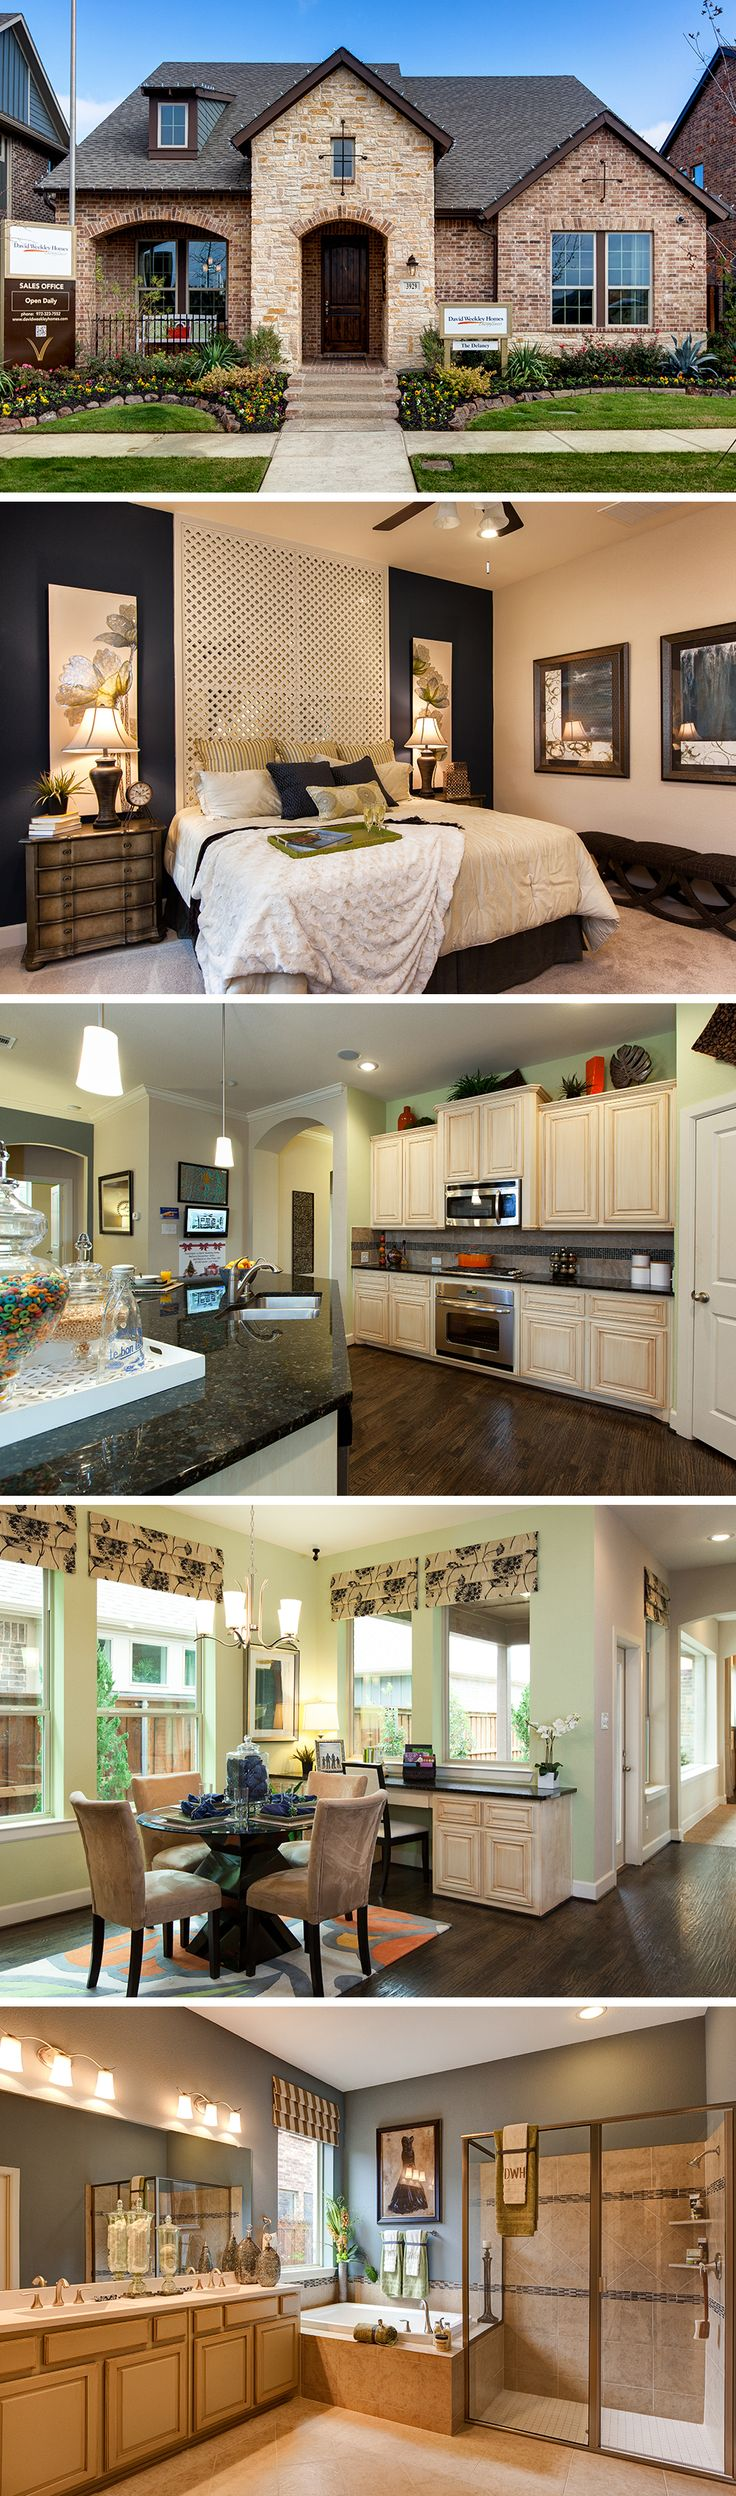 The  Delaney by David Weekley Homes in Viridian Executive is a 6 bedroom 5 bathroom home that features a large open kitchen and family room, a 3 car garage and a large owners retreat. Custom home options include an optional extra room on the 2nd story, a covered porch and a larger shower in the owners retreat.